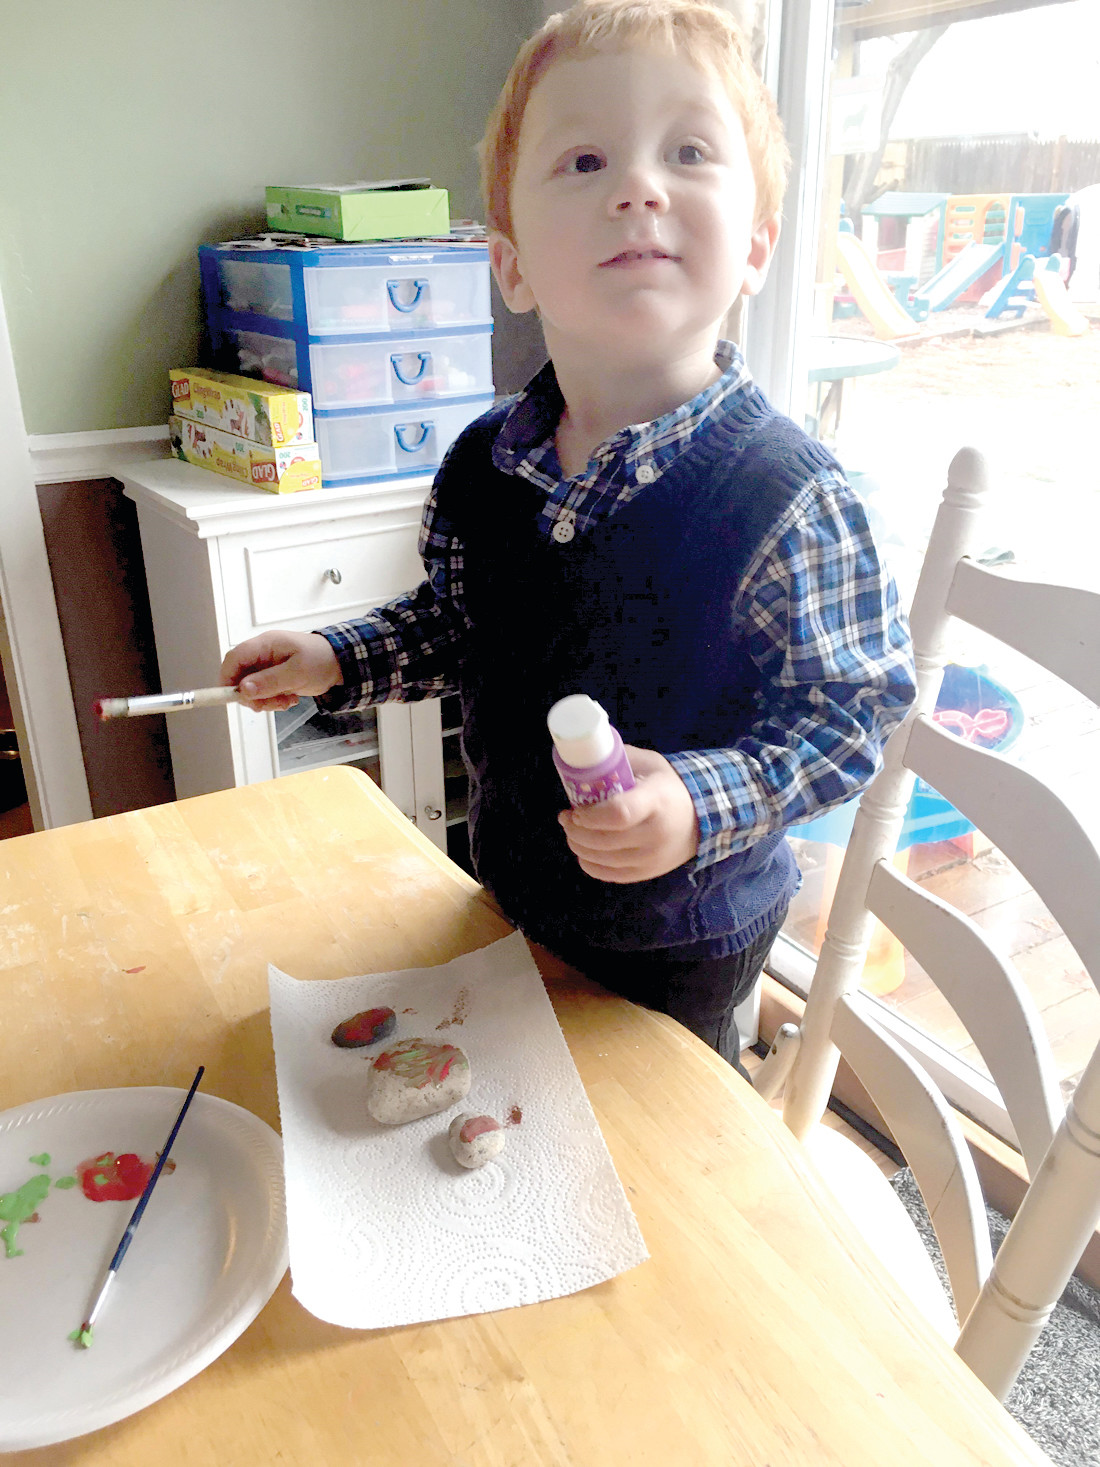 PIECE DE RESISTANCE: Two-year-old Cole McCarthy likes to paint multiple rocks at once at his grandmother's house.